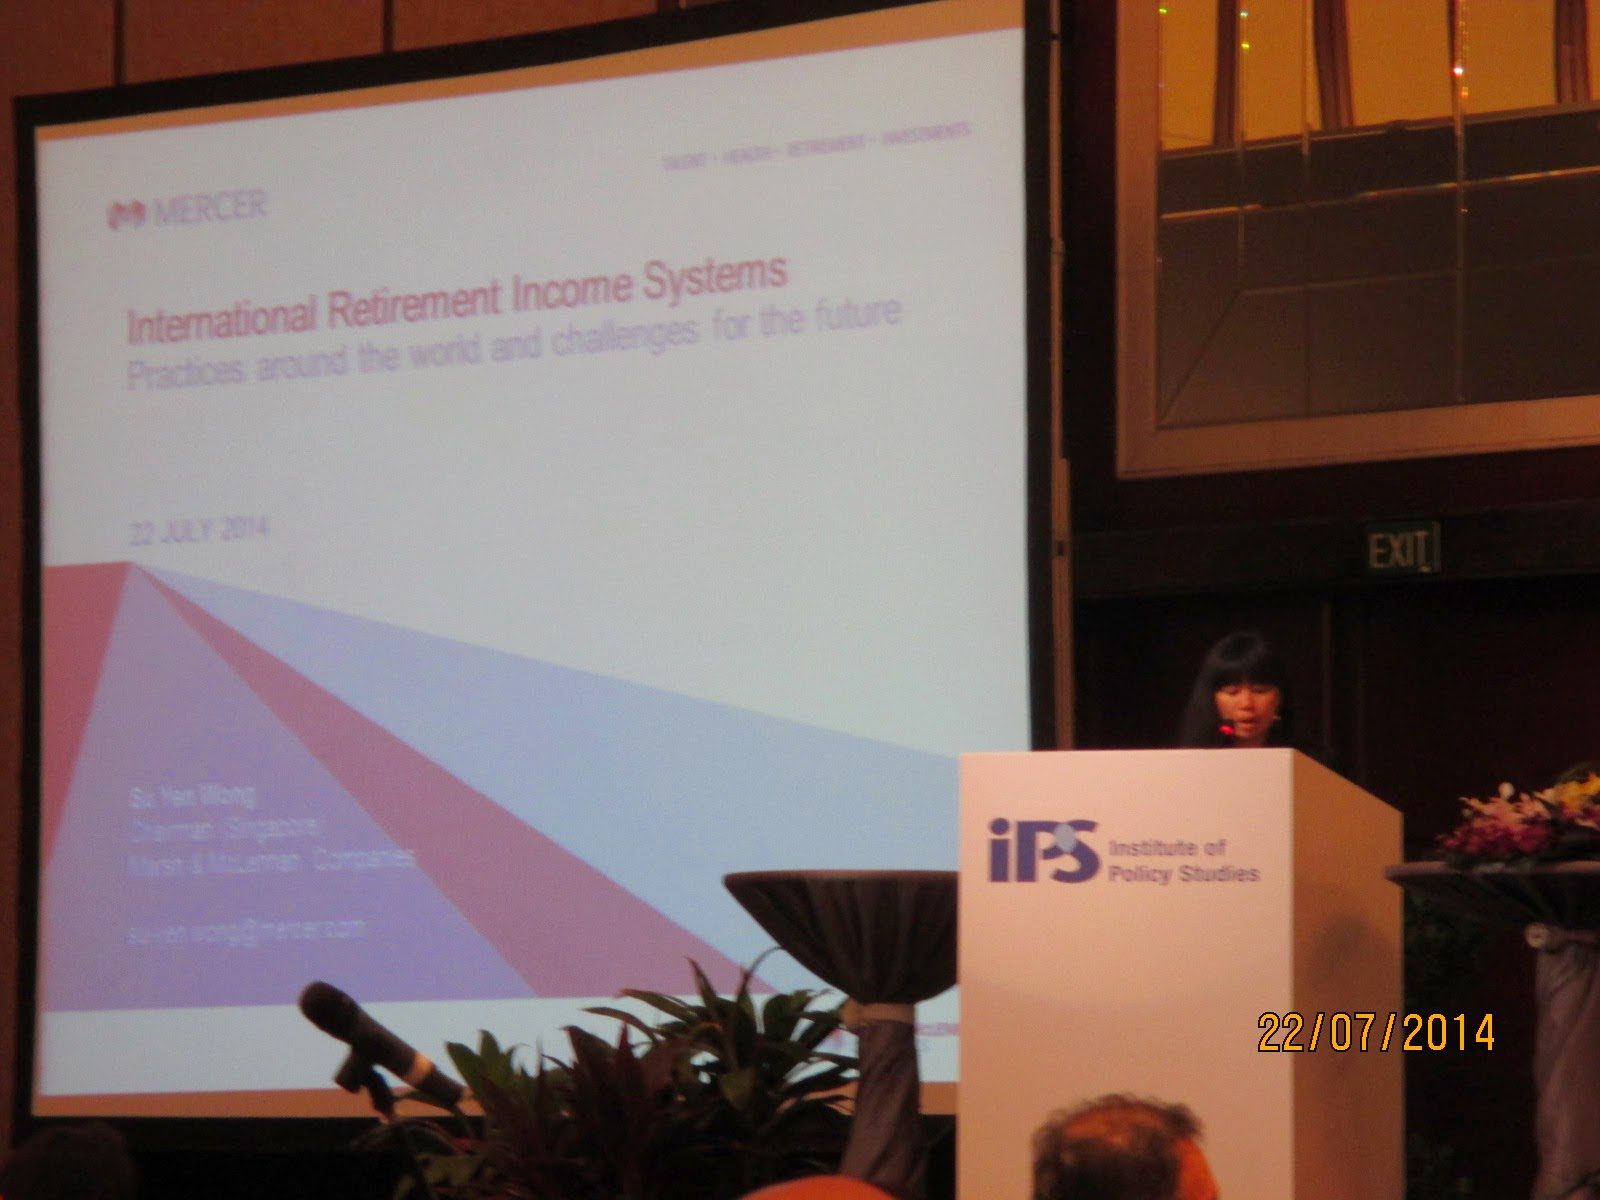 ips forum on cpf international retirement income systems